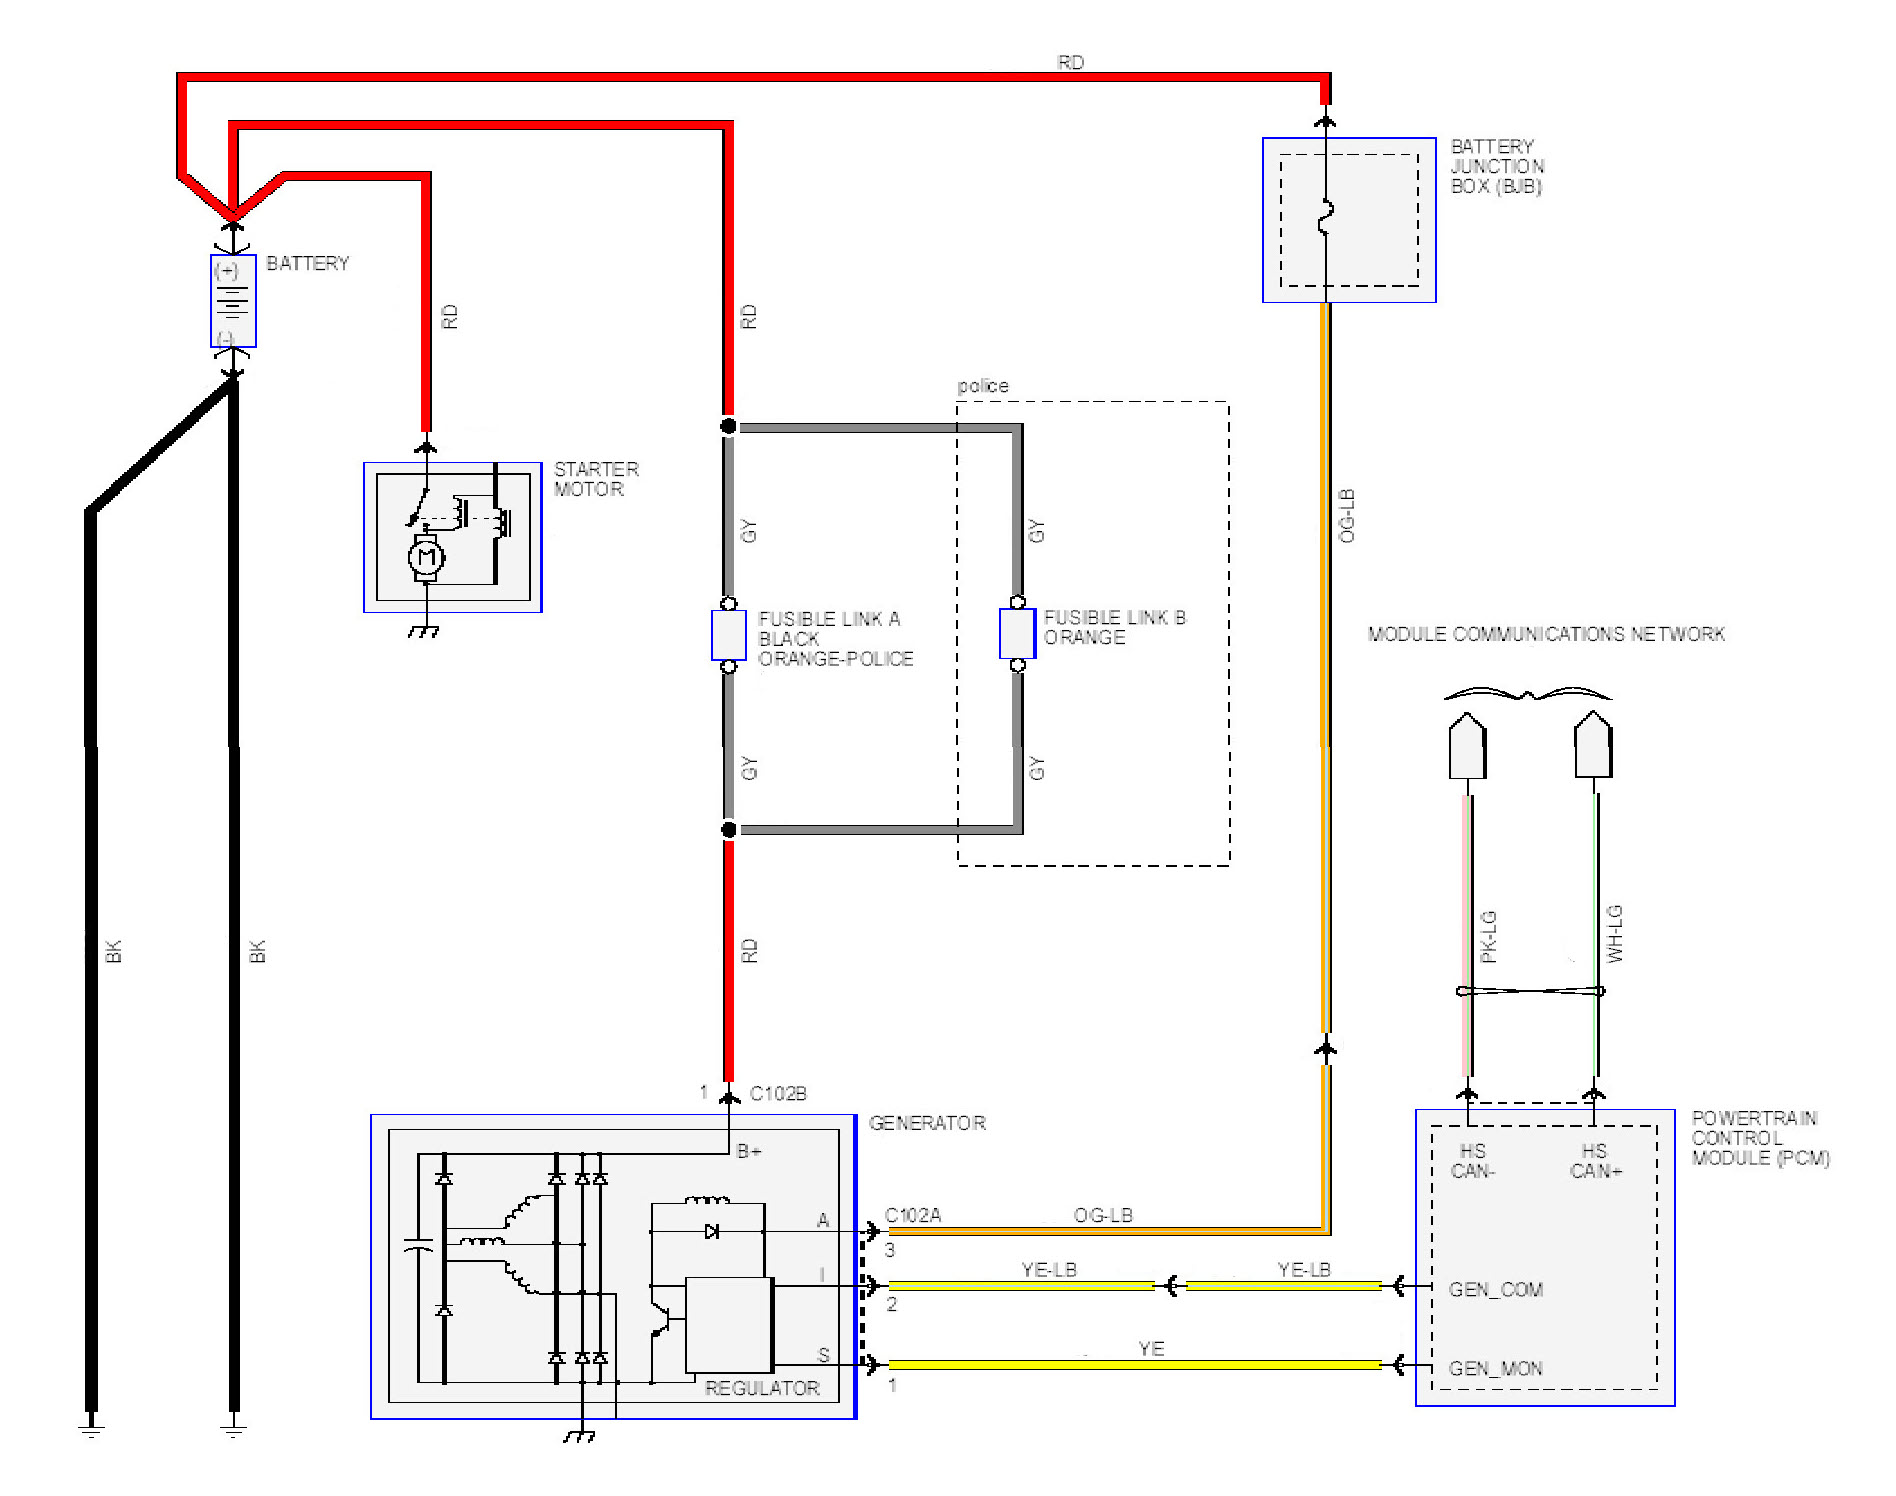 10crownviccharge ford crown victoria alternator wiring diagrams Wiring Harness Diagram at mifinder.co